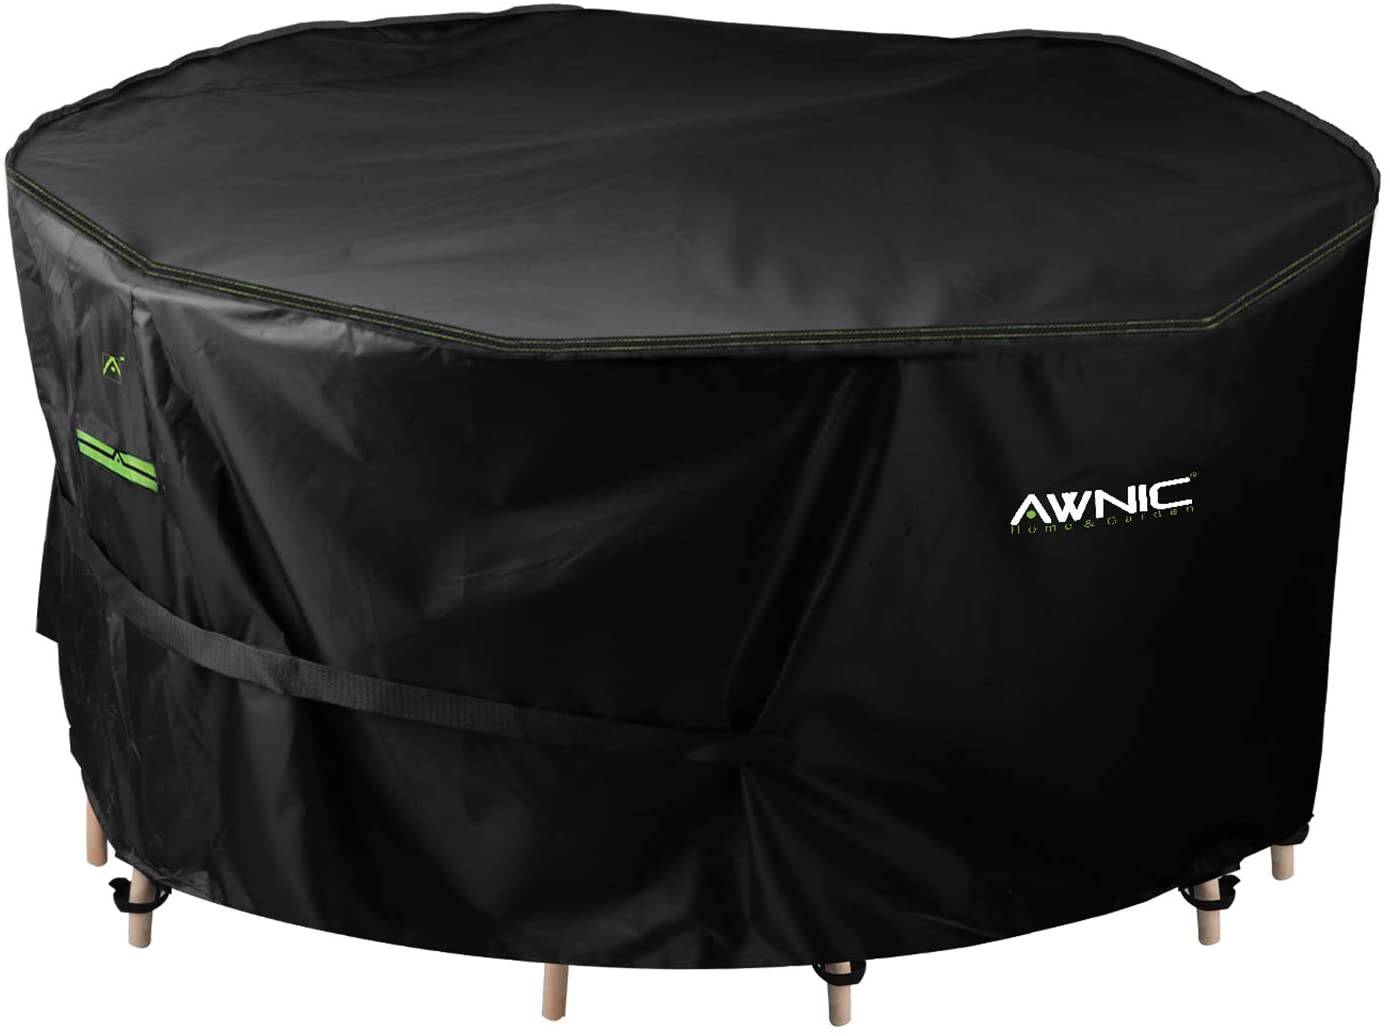 AWNIC Round Table Hot Tub Cover